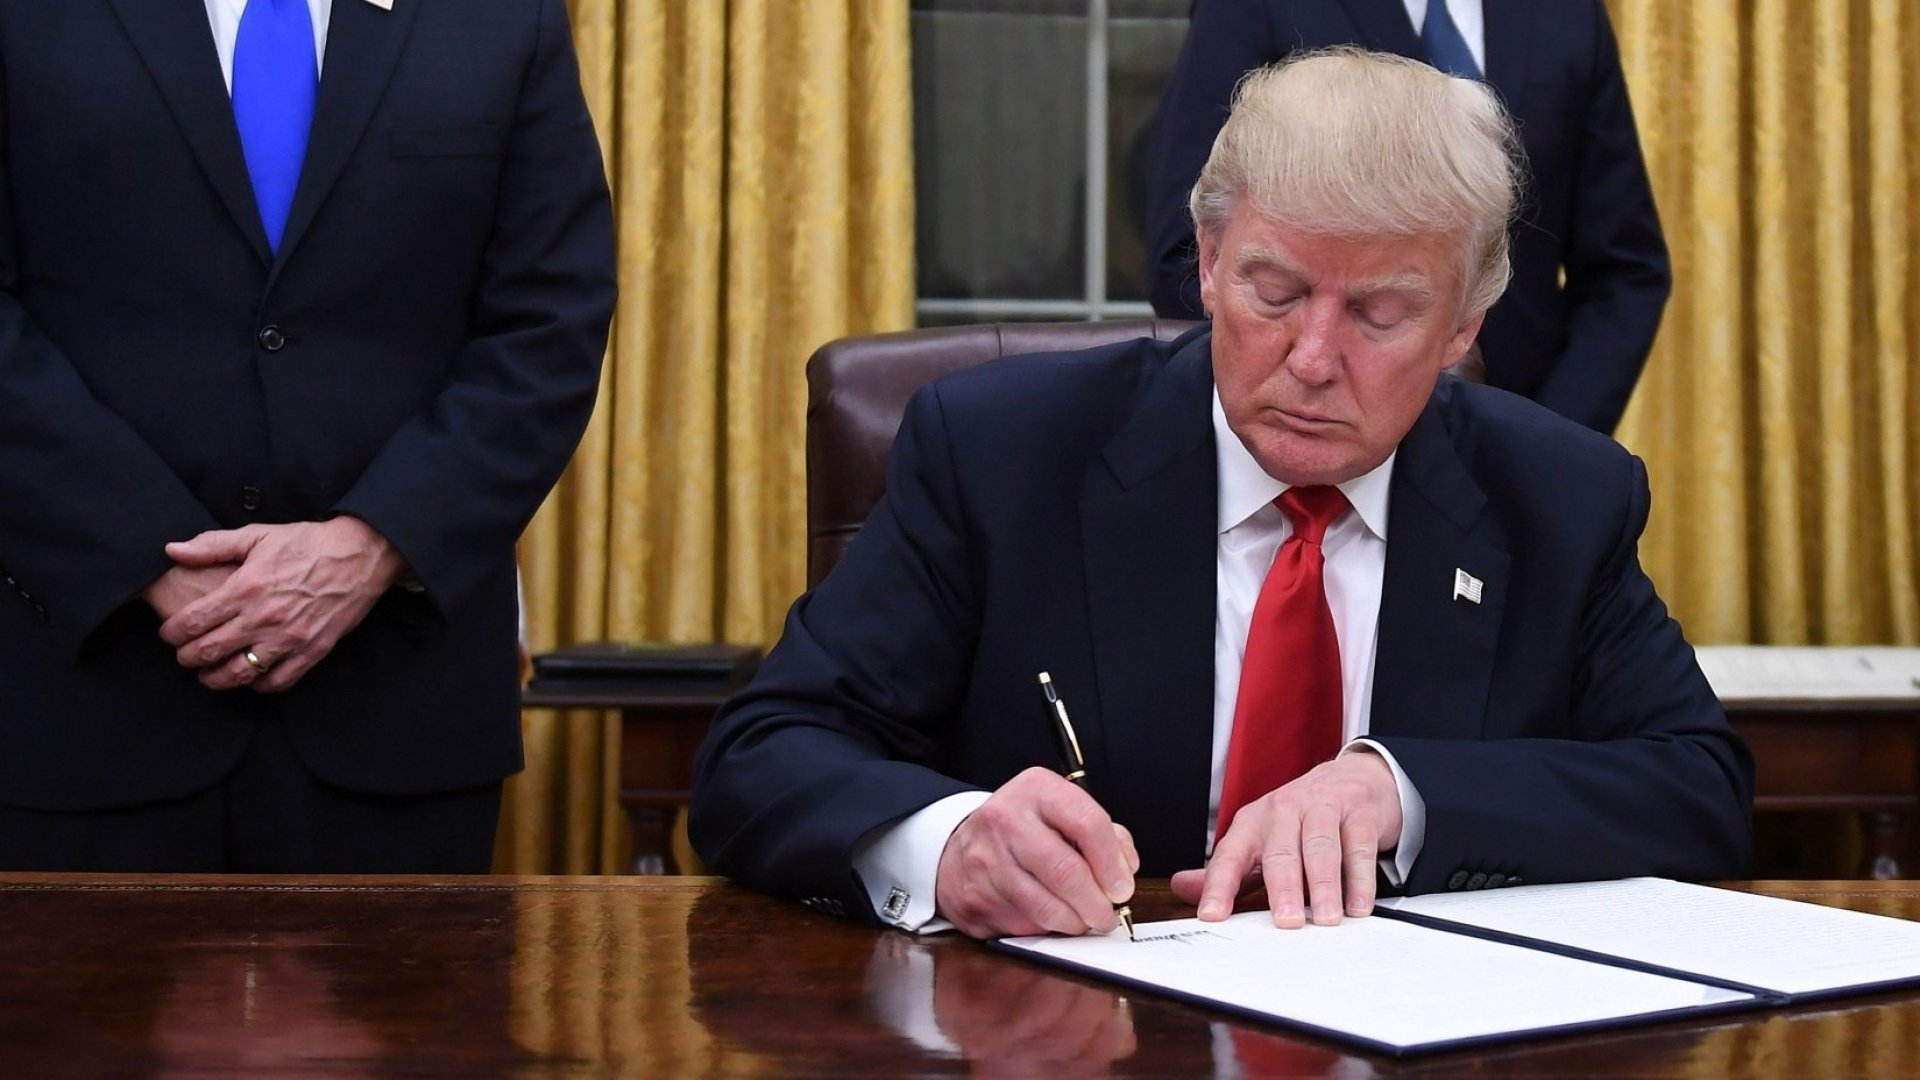 Your Online Privacy Is in President Trump's Hands Now